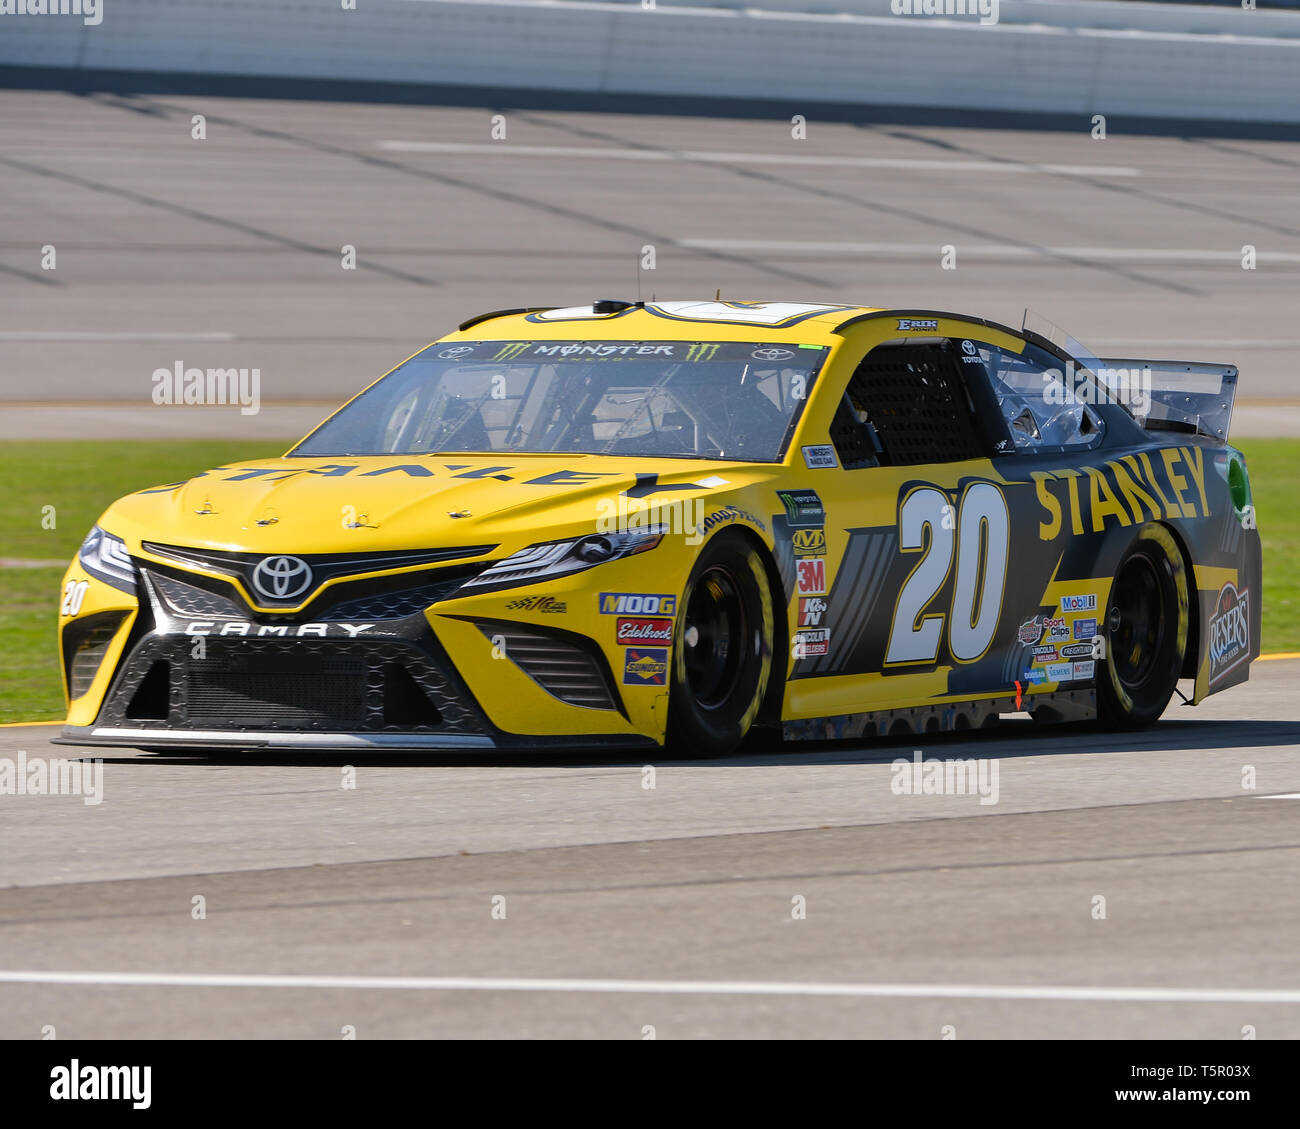 Lincoln, AL, USA. 26th Apr, 2019. The Stanley Toyota (20), driven by Erik Jones in the pit area during the General Tire 200 at Talladega Super Speedway in Lincoln, AL. Kevin Langley/Sports South Media/CSM/Alamy Live News - Stock Image